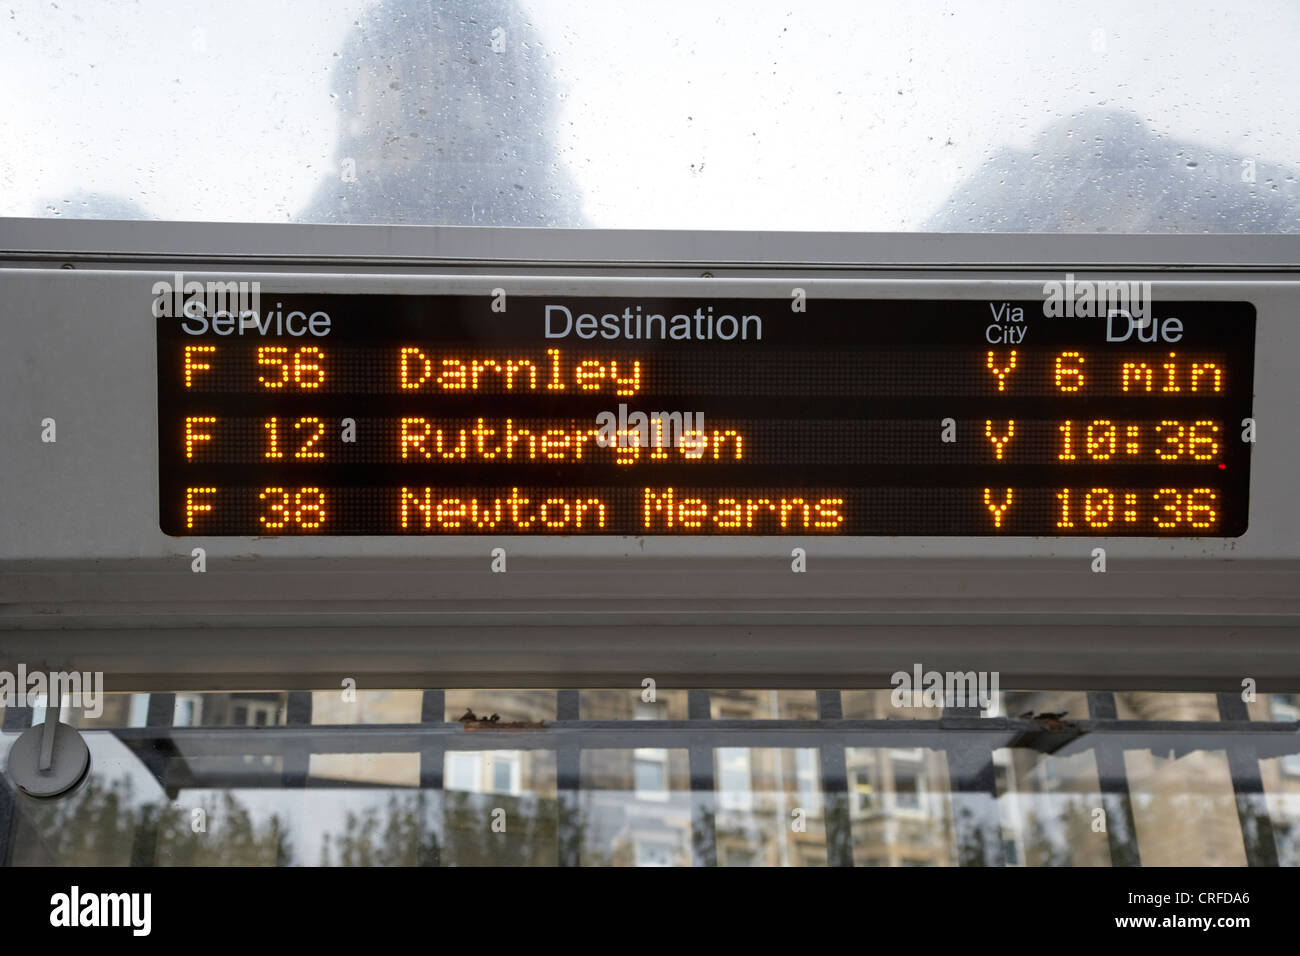 electronic bus timetable in central glasgow scotland uk - Stock Image